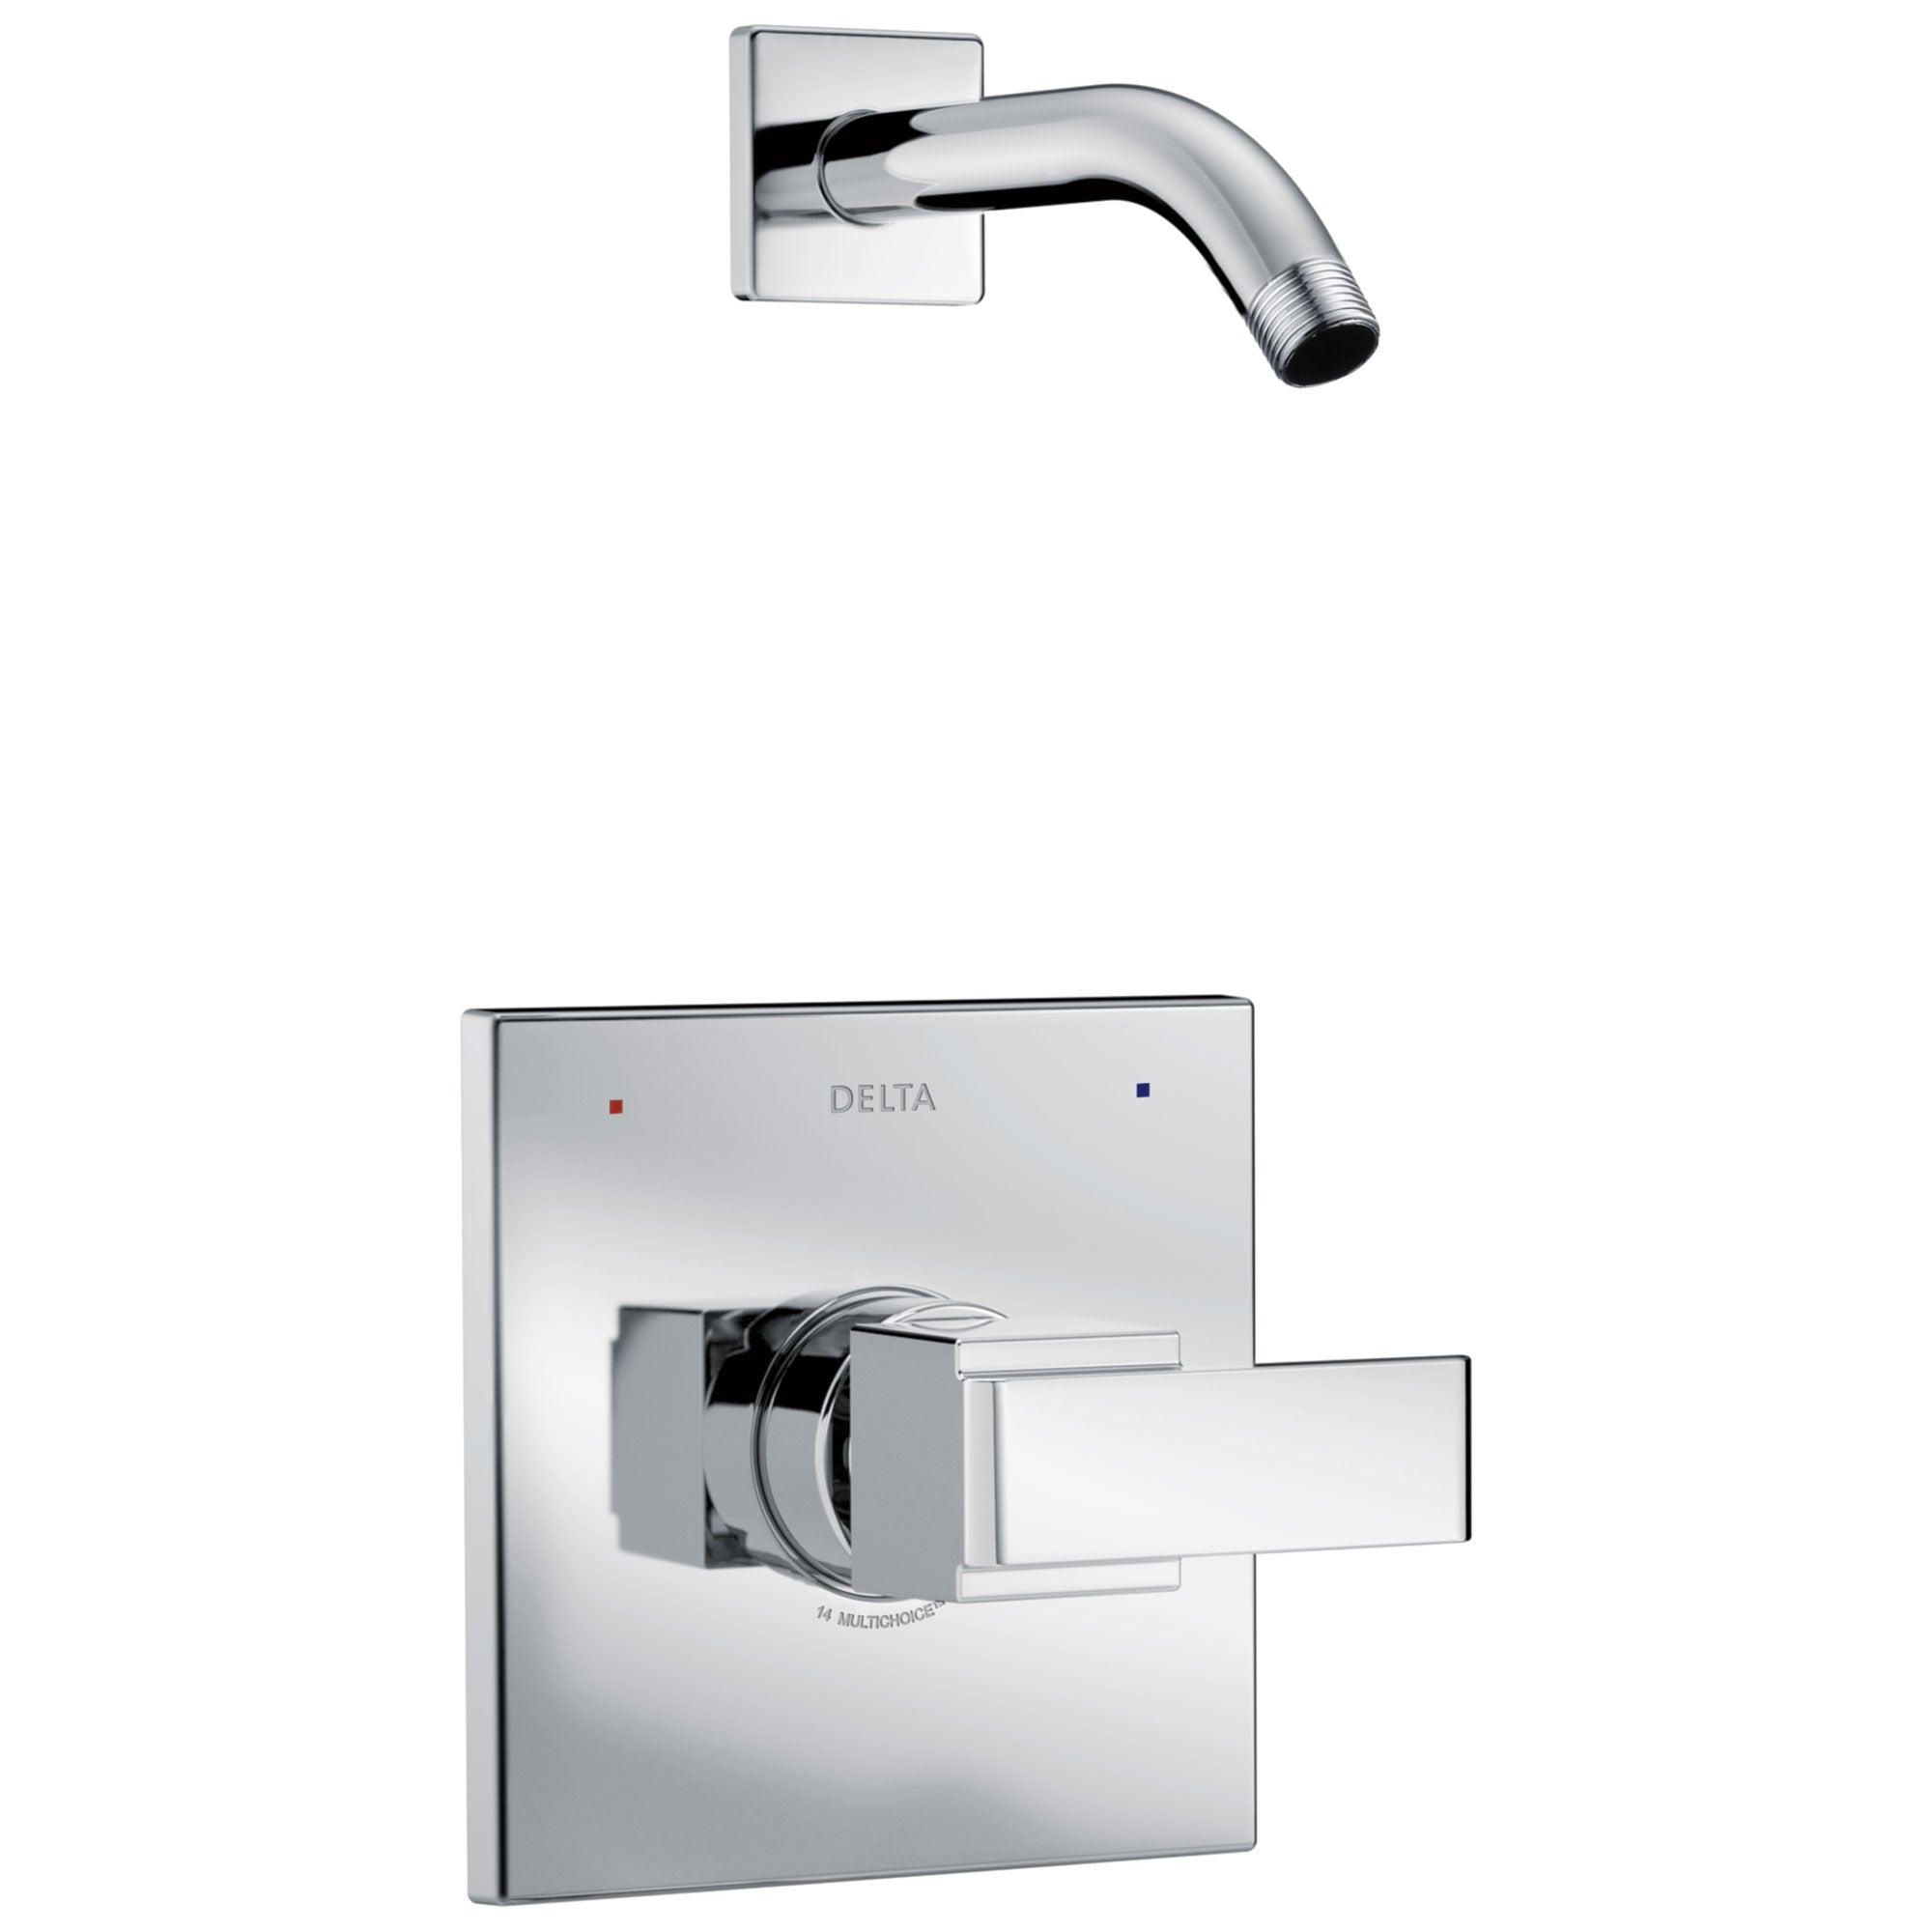 Delta Ara 1-Handle Shower Faucet Trim Kit in Chrome with Less Showerhead Includes Rough-in Valve without Stops D2560V